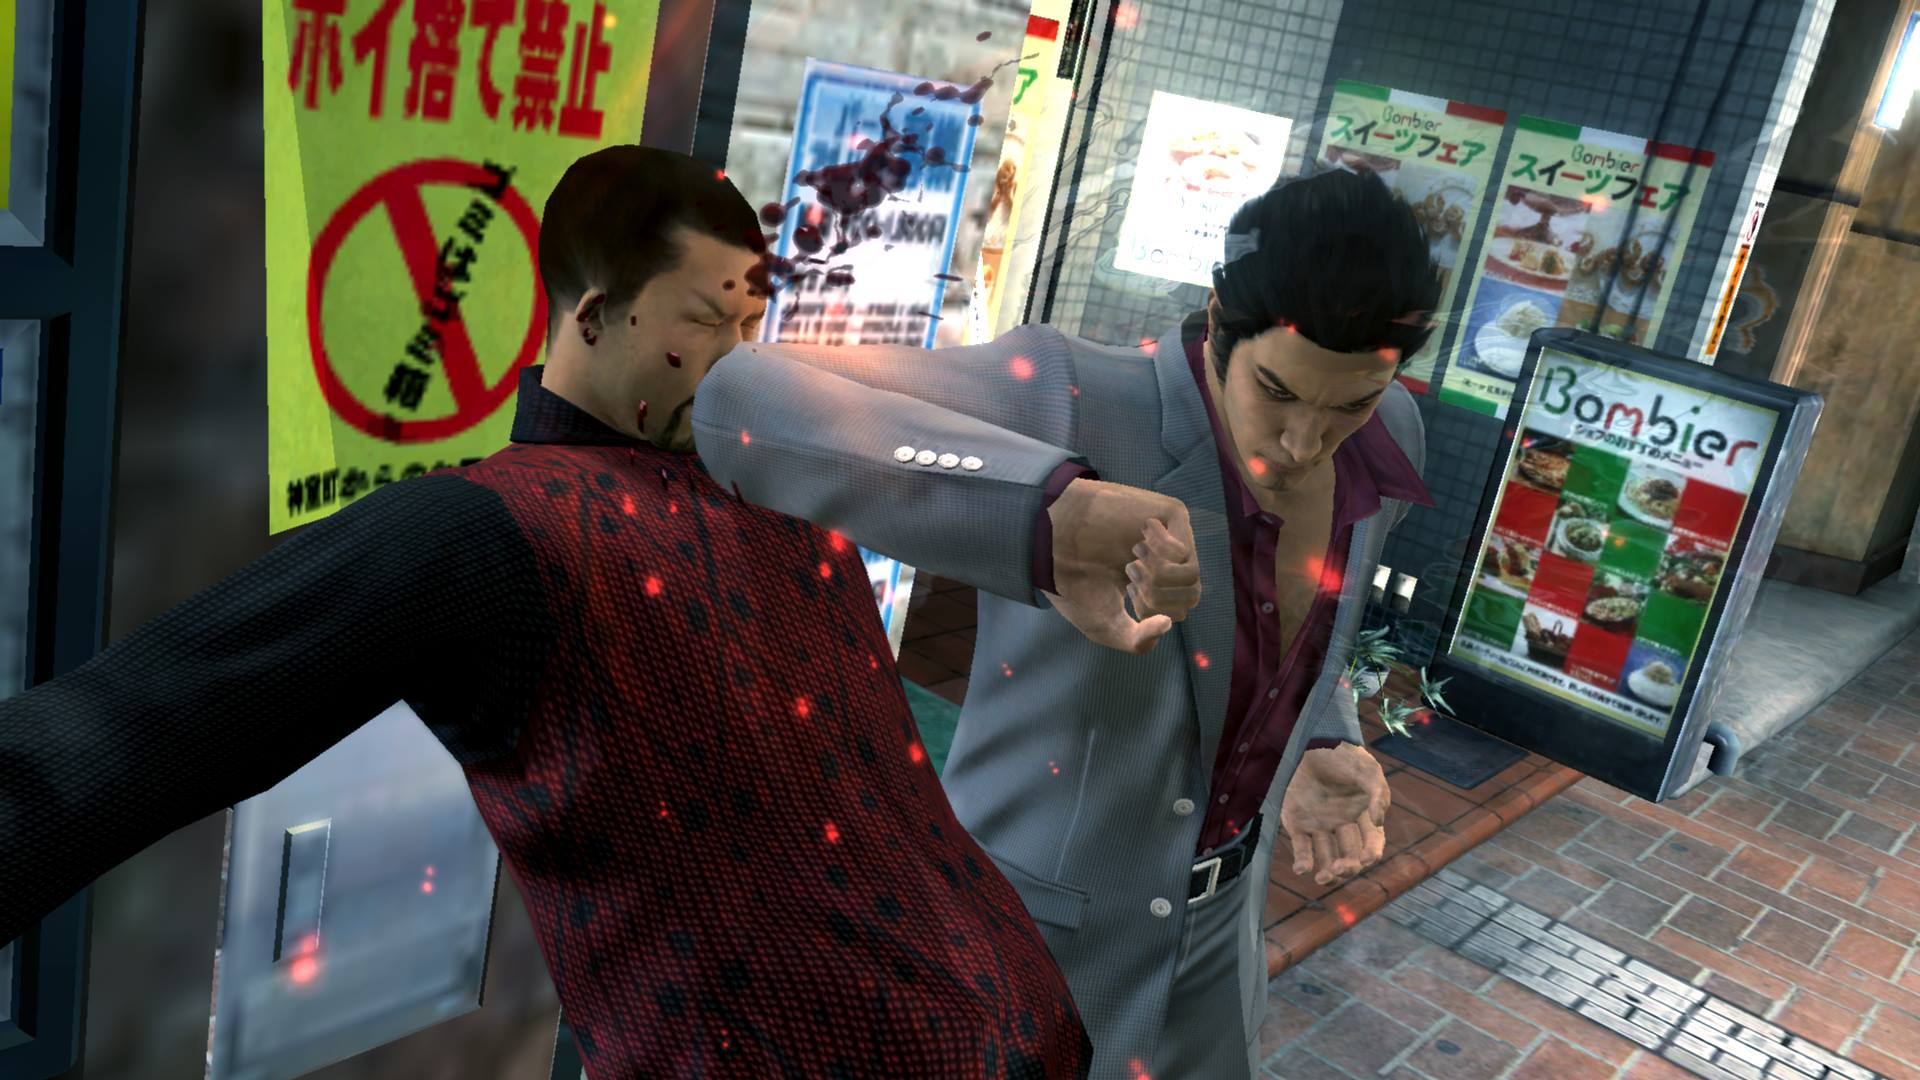 YAKUZA 3,4,5 Remaster on PS4 1526981583-image